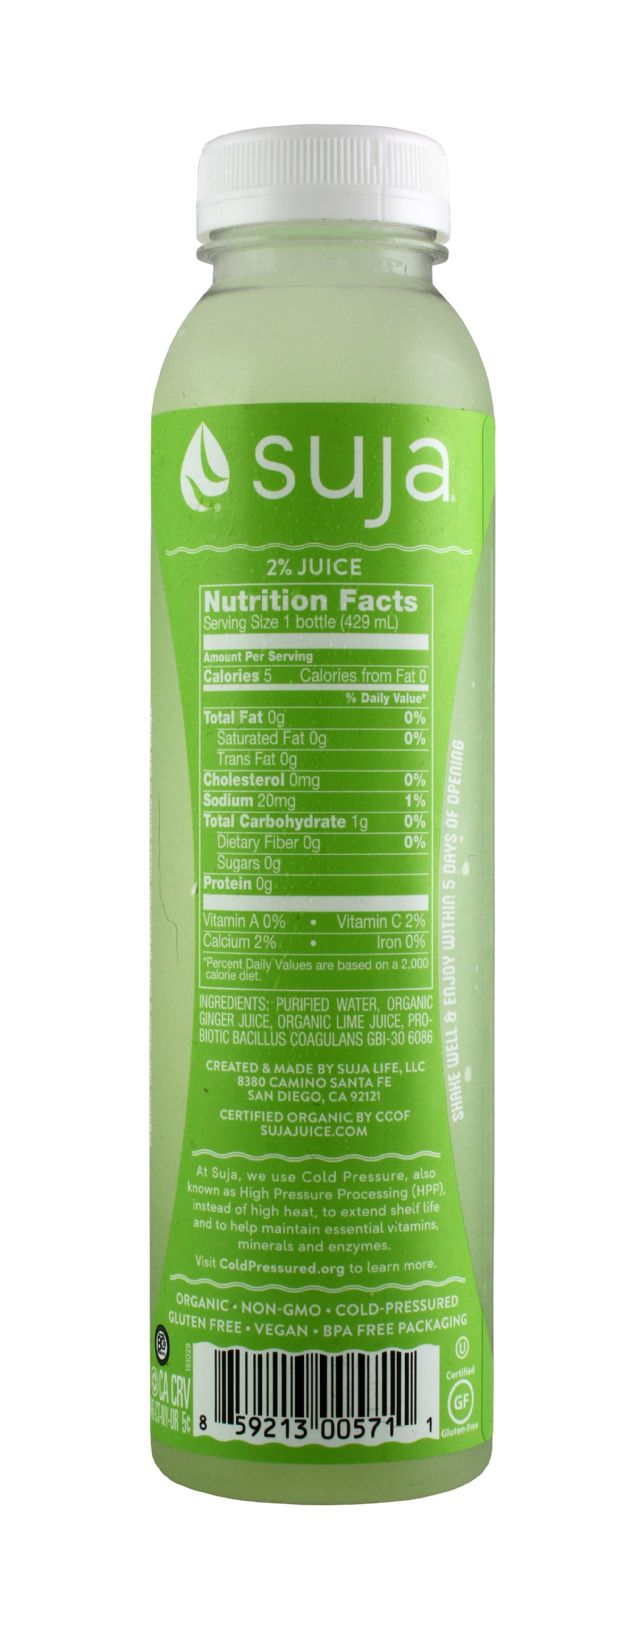 Suja Probiotic Water: Suja GingLime Facts